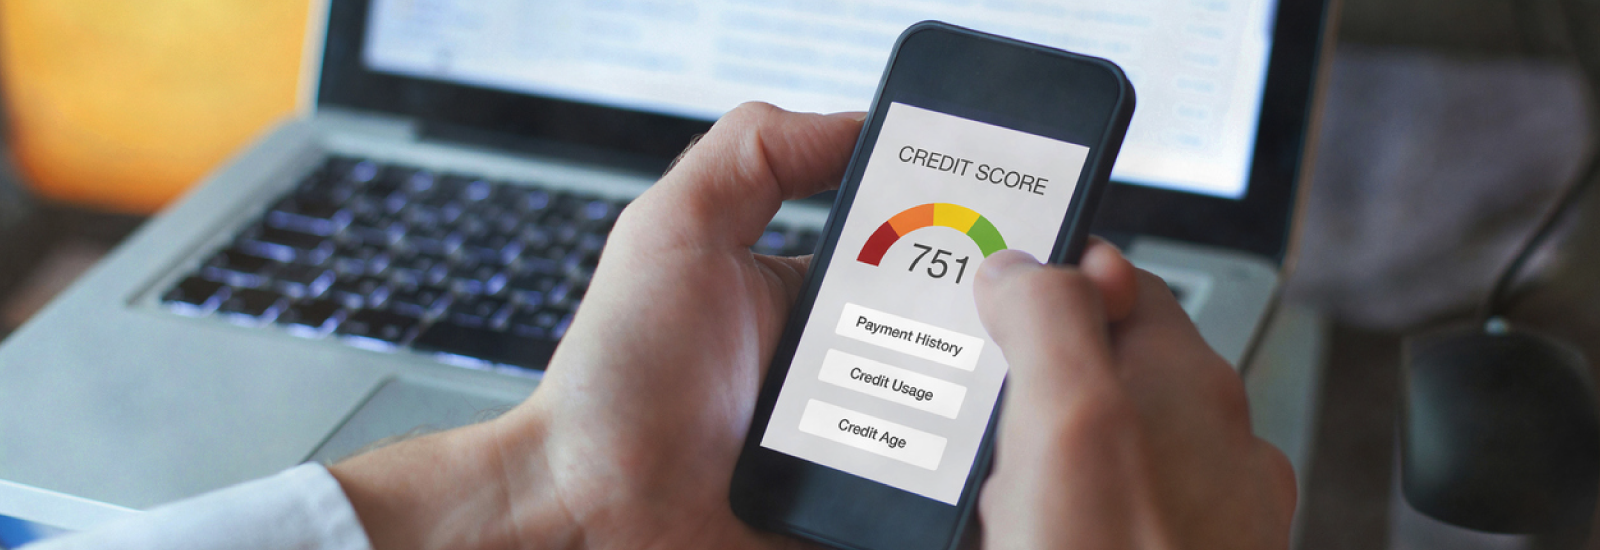 How to Check My Credit Score?